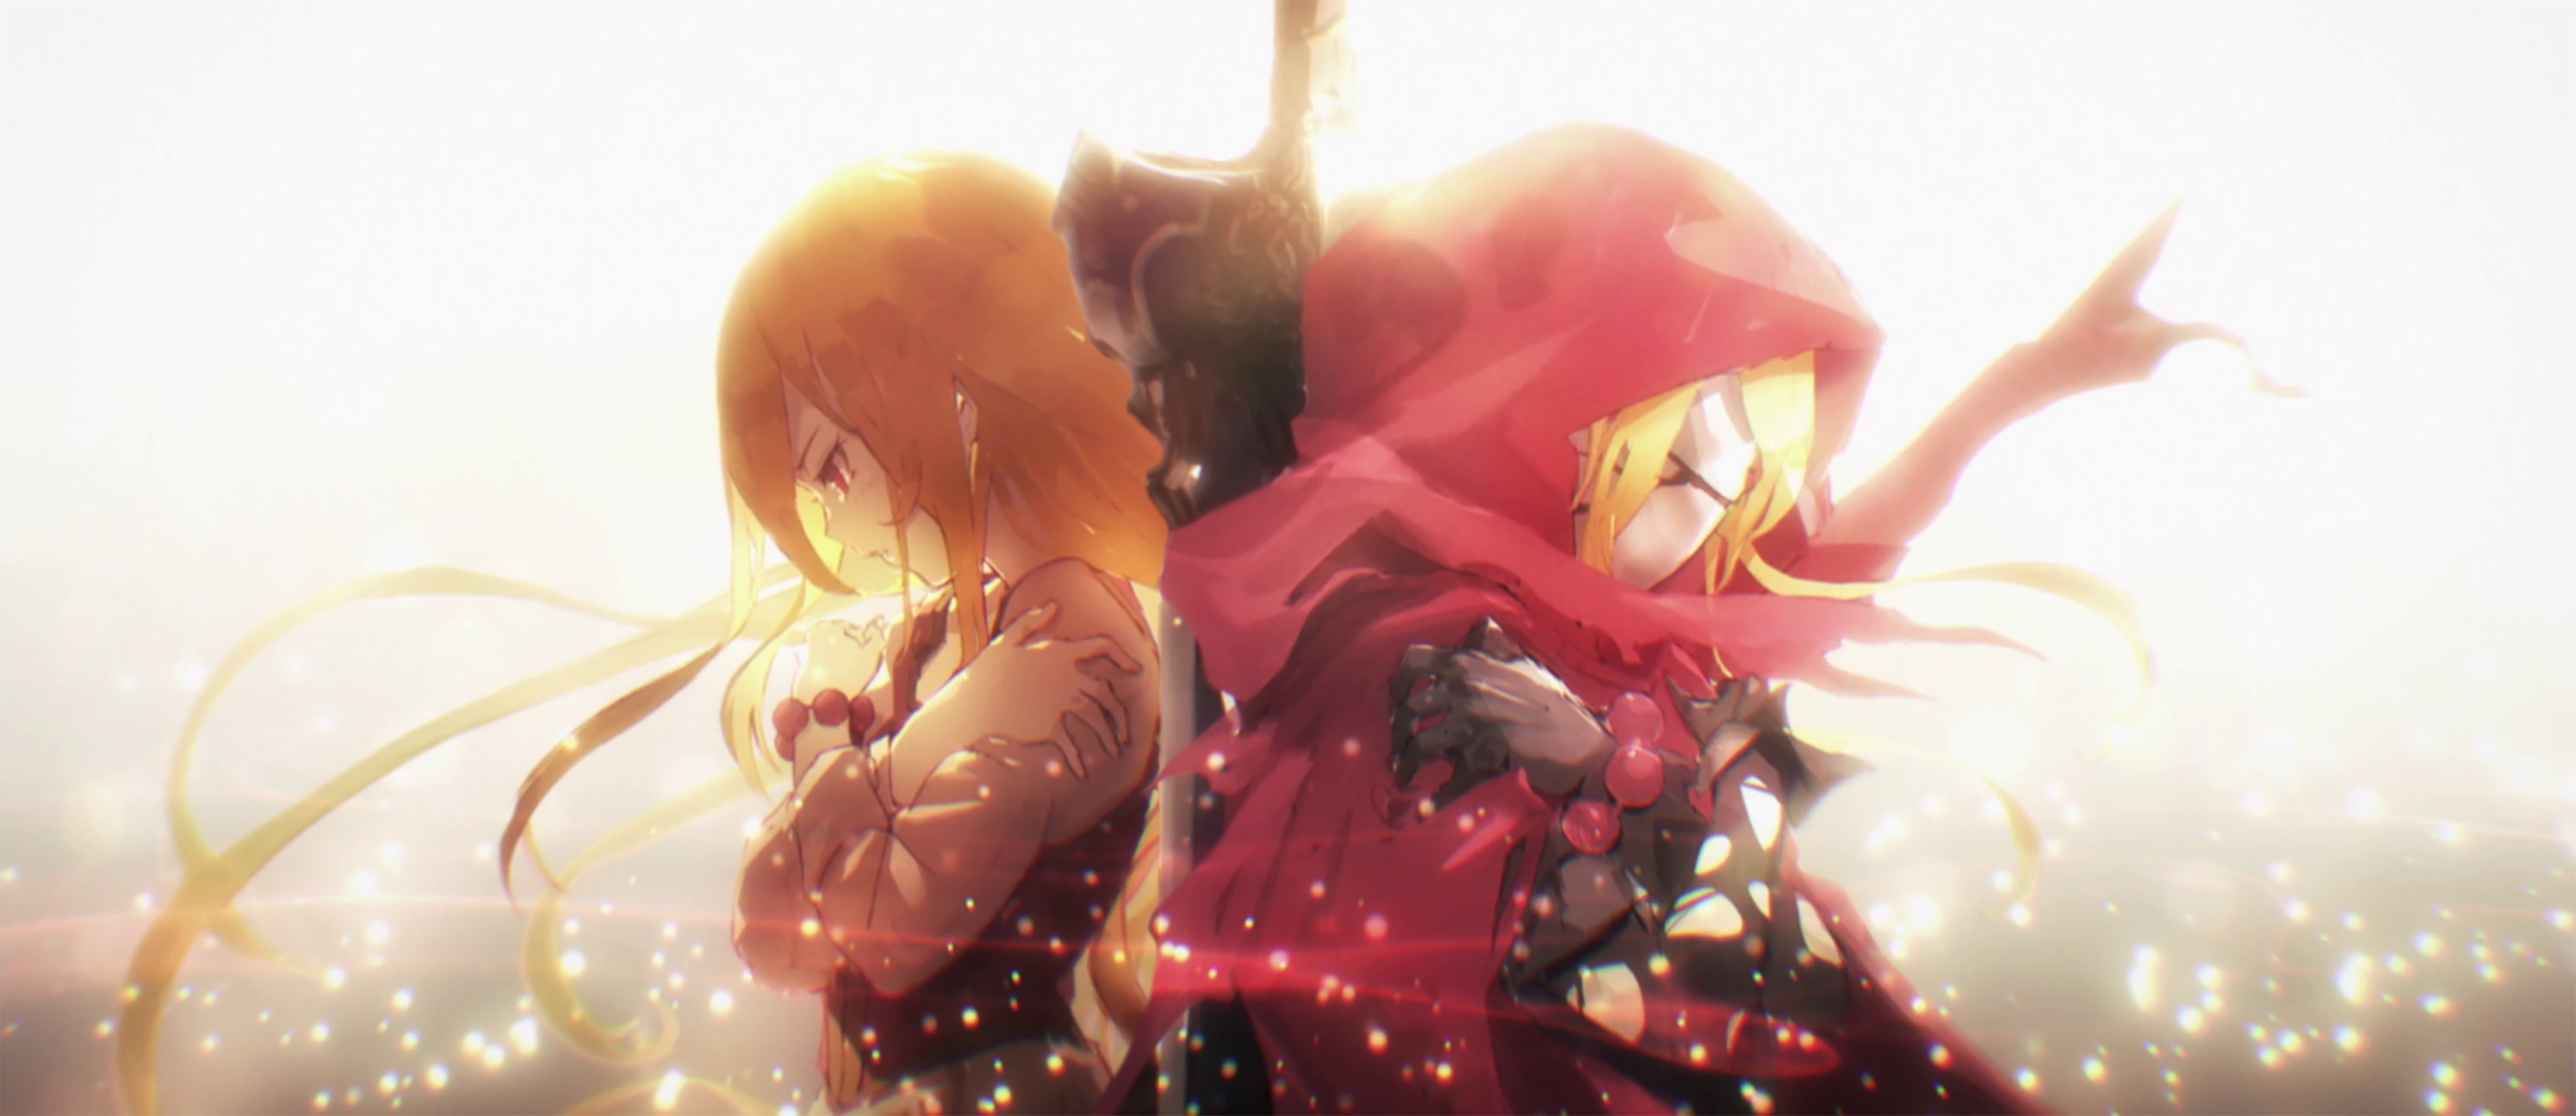 Res: 3323x1440, S2 Evileye Ending card ...